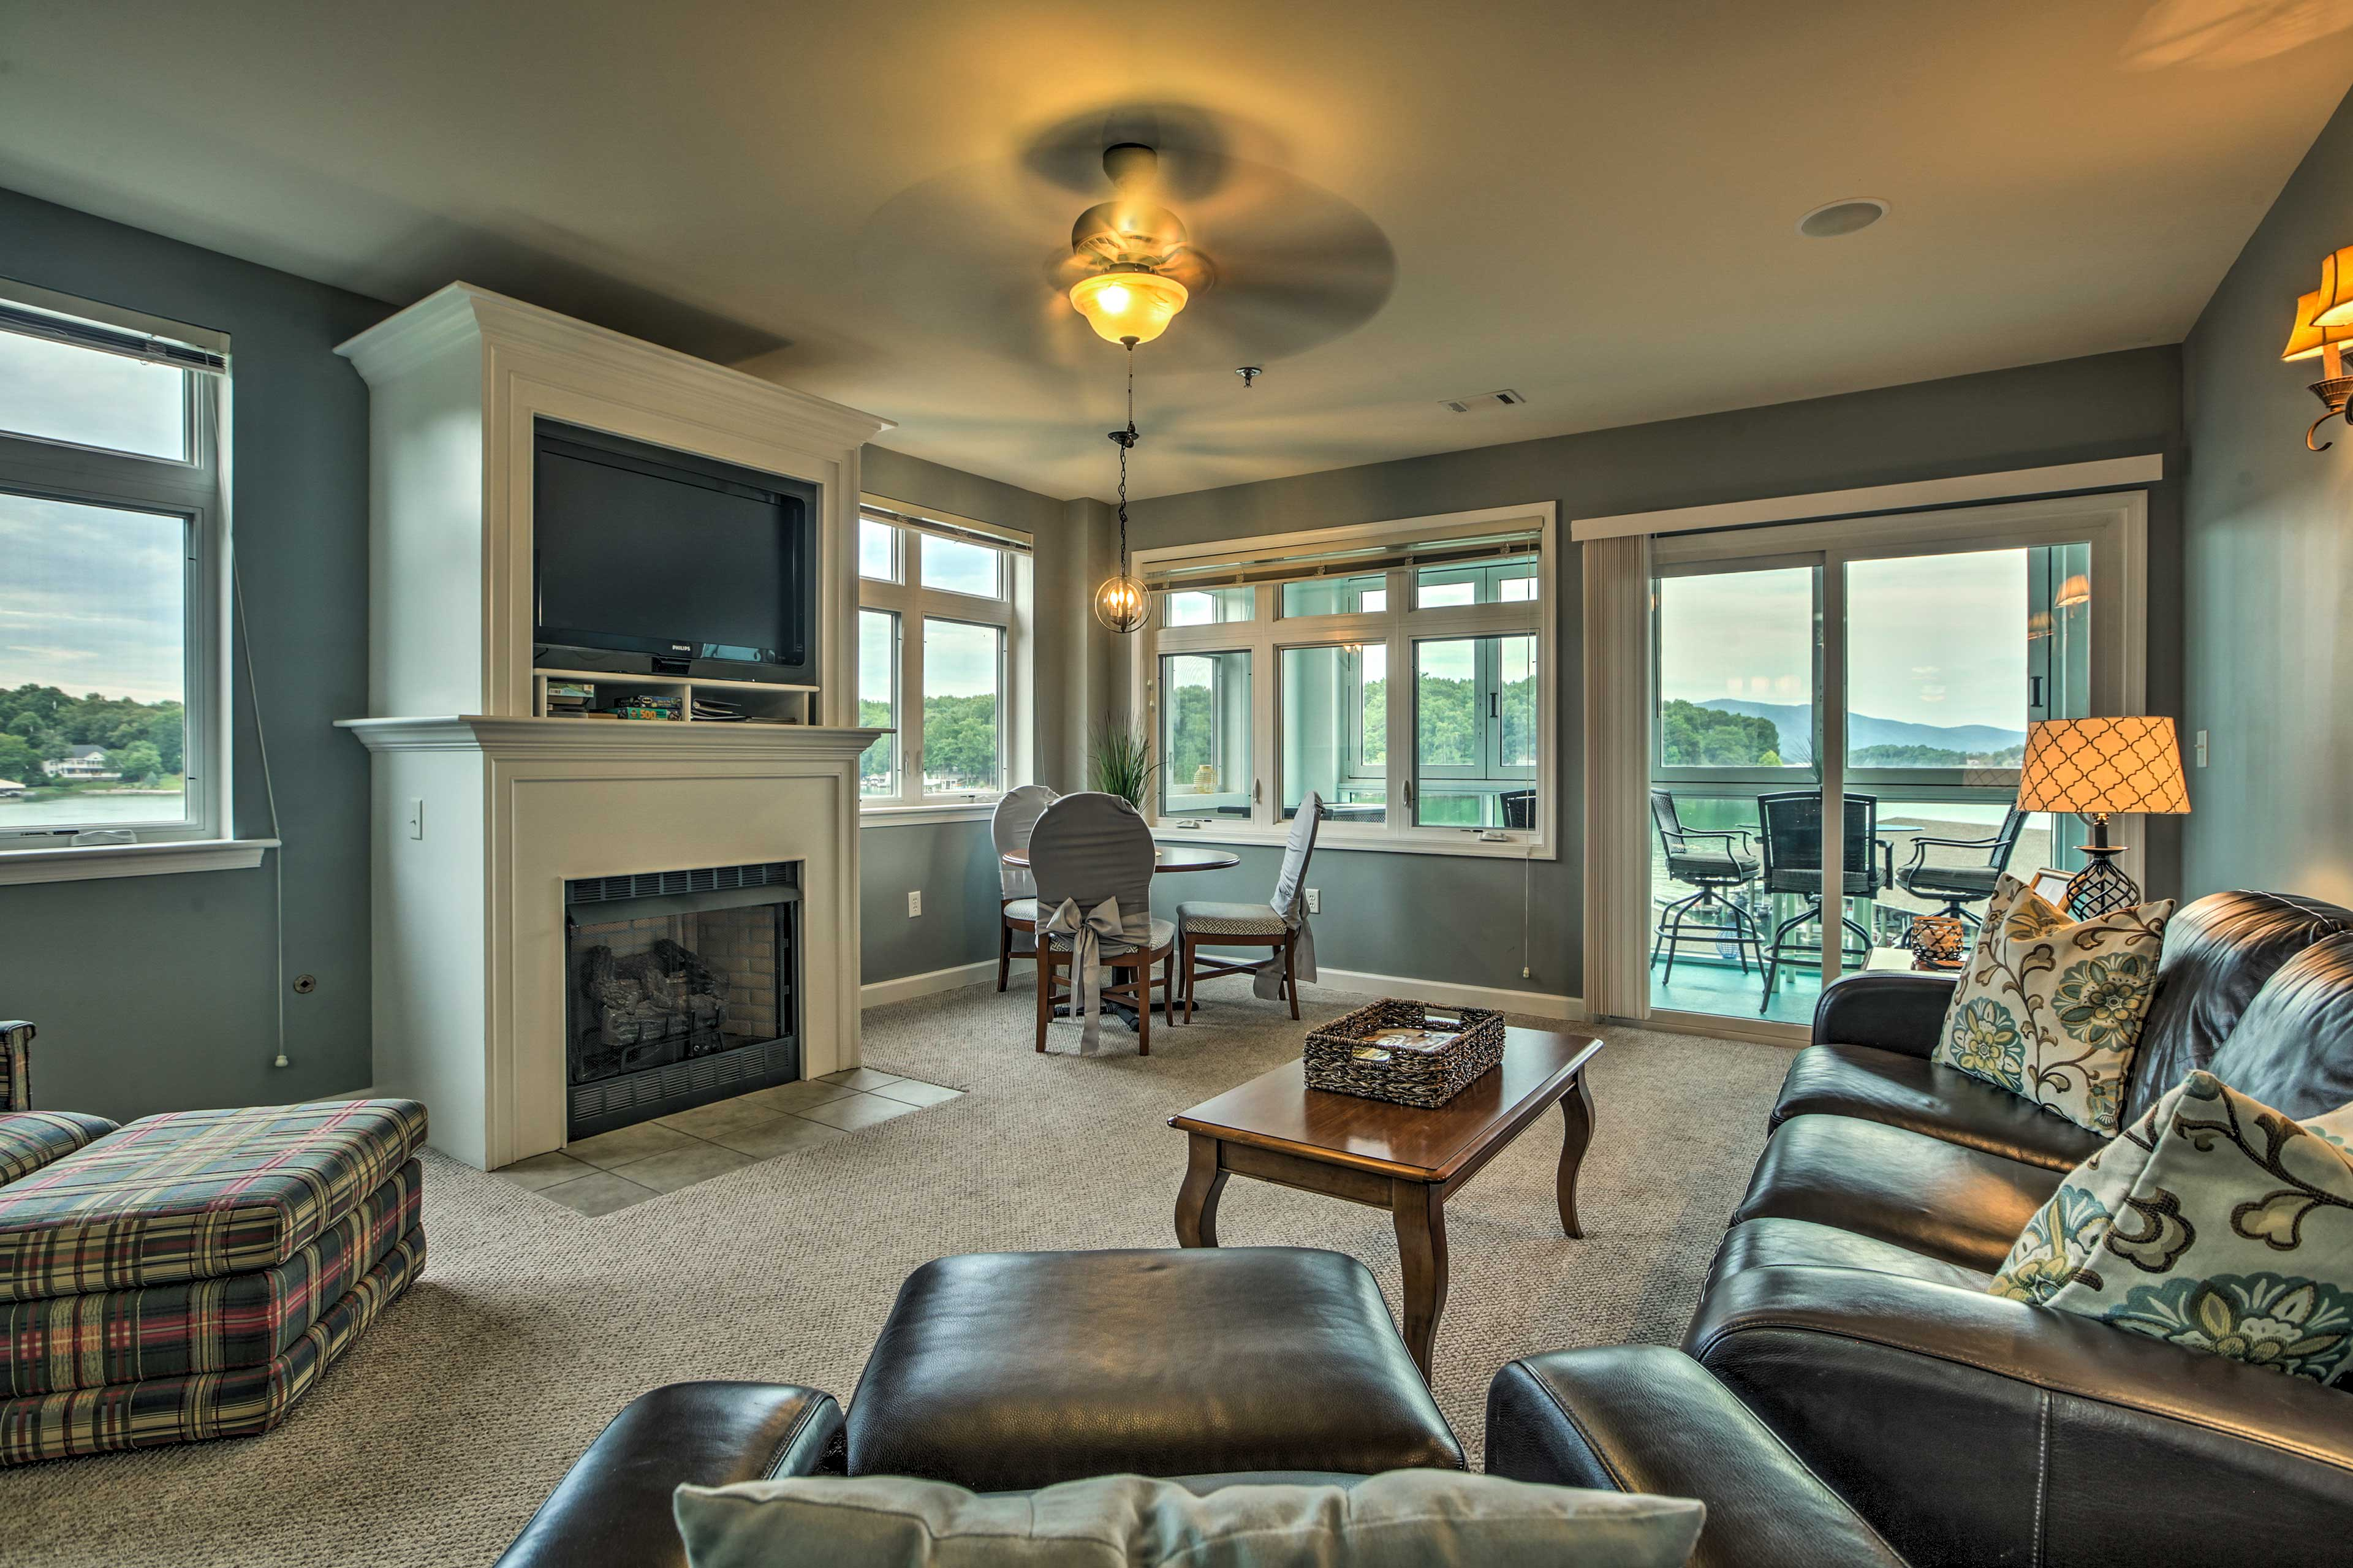 Cozy up next to the gas fireplace while you watch shows on the flat-screen TV.